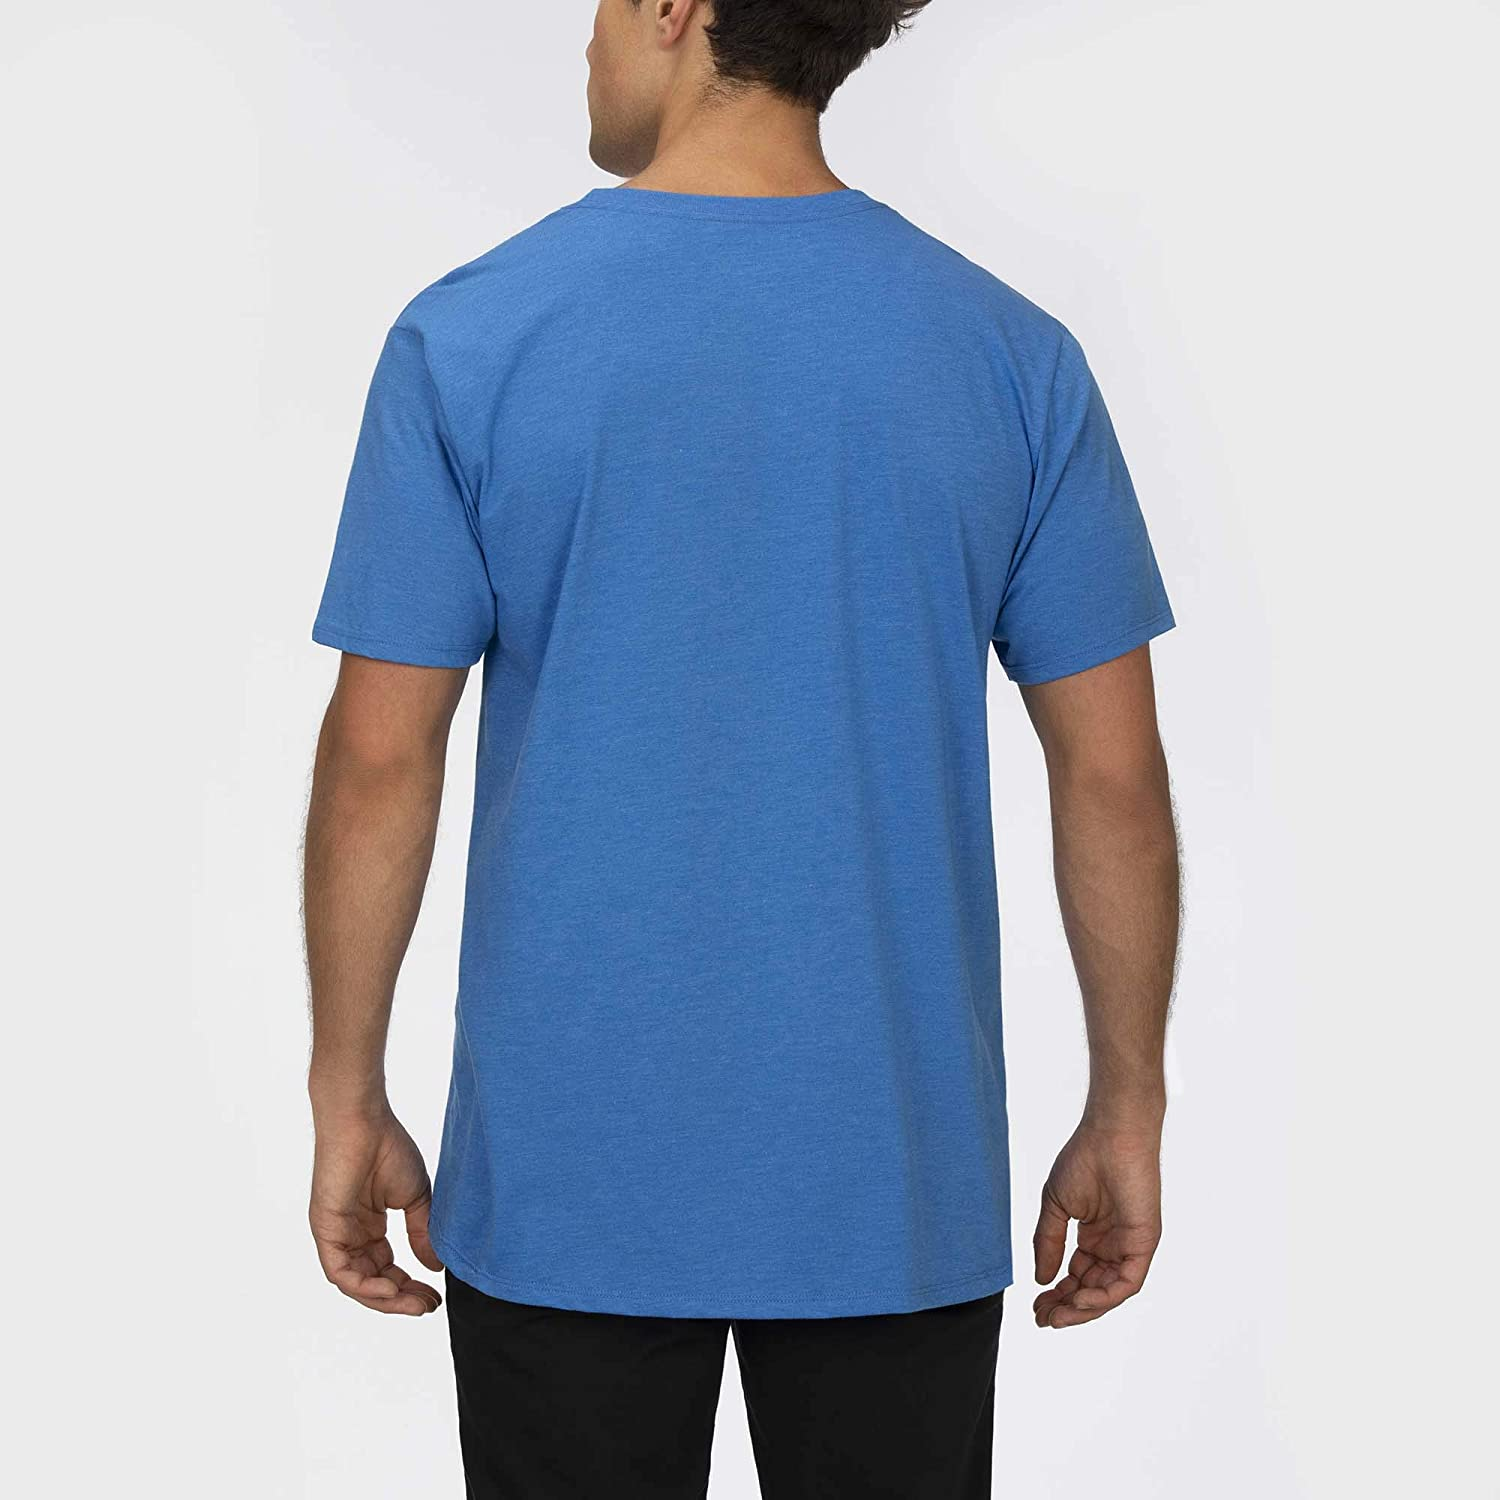 Hurley Mens Premium One /& Only Short Sleeve T-Shirt